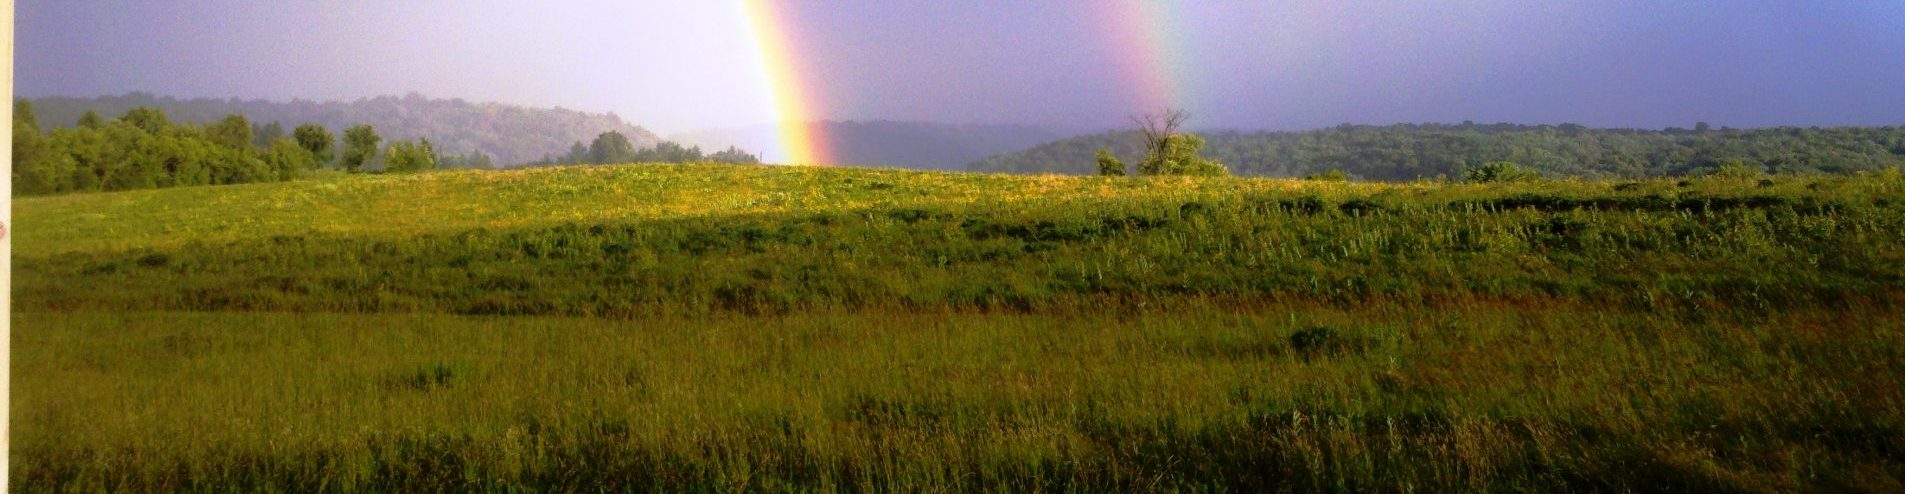 landscape with two rainbows